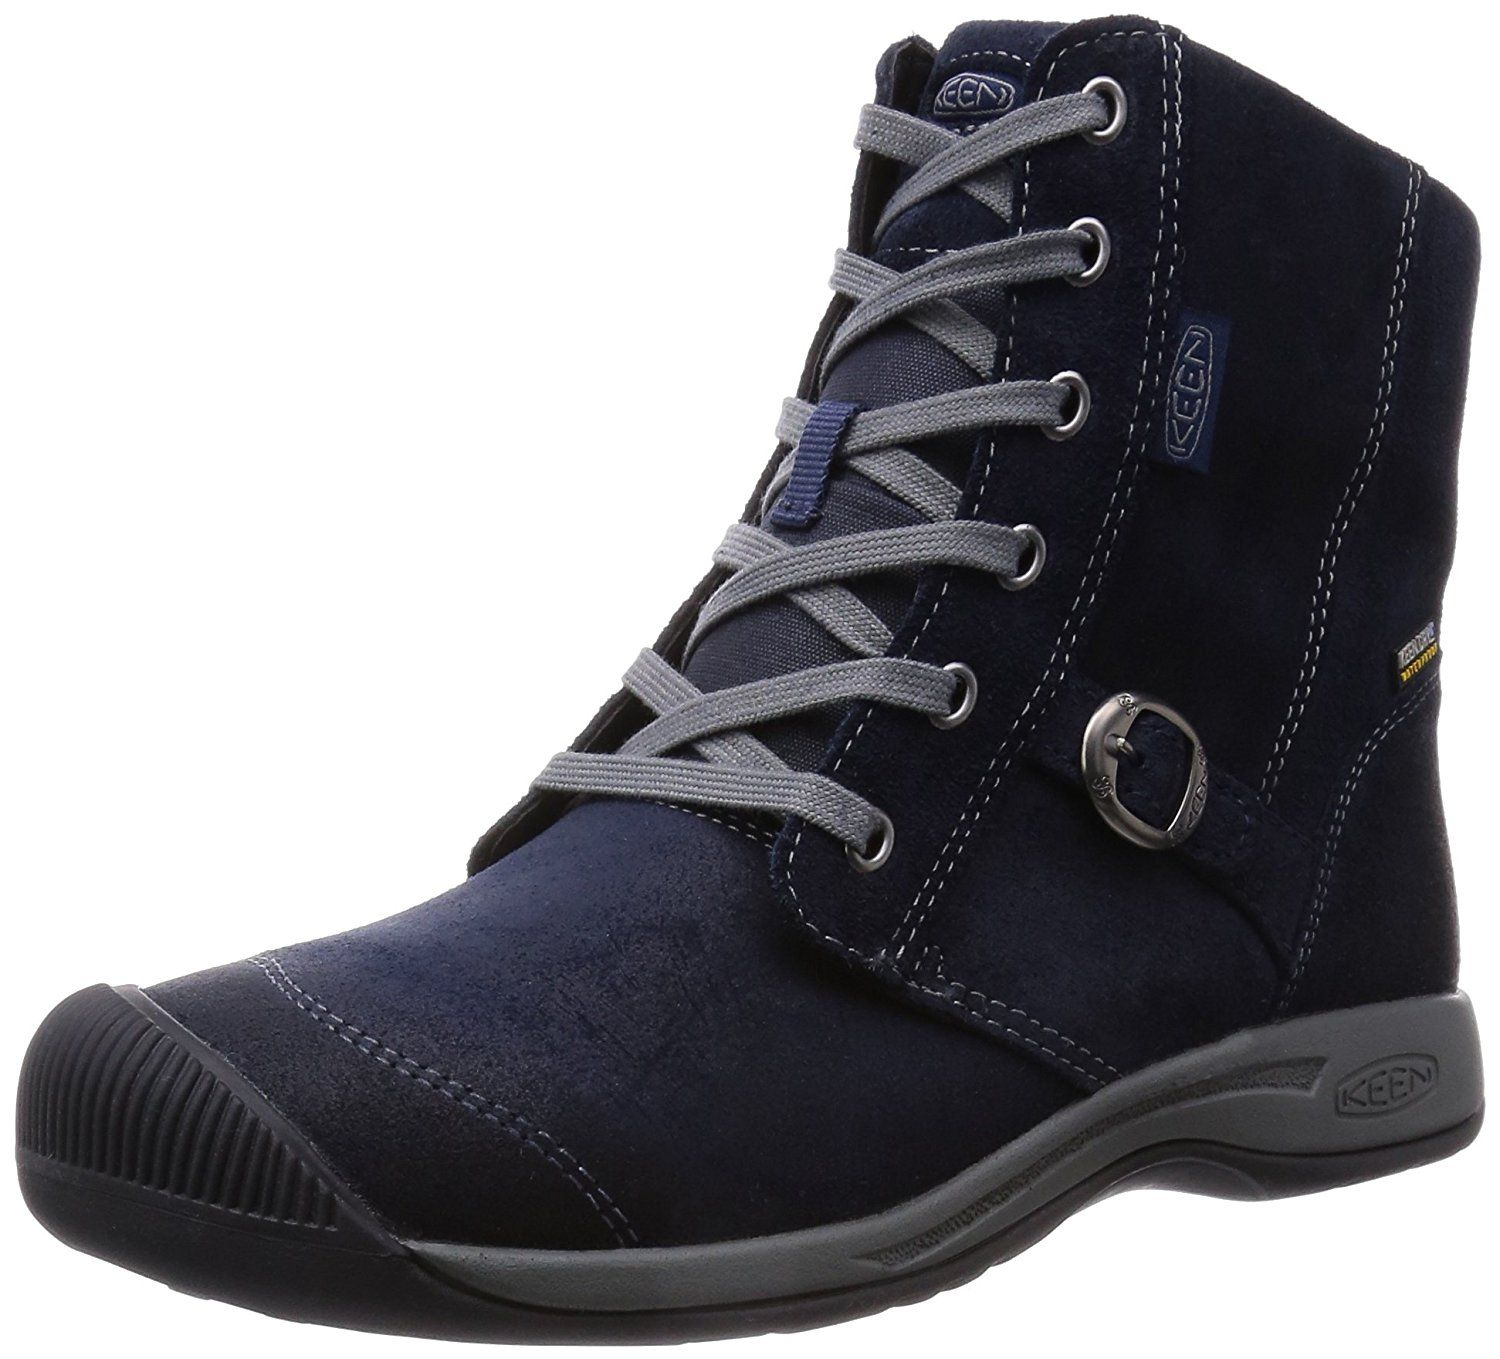 Keen strassenschuhe tHE 59 - Noir - Noir, 7.5 - Chaussures keen  (*Partner-Link) | Chaussures Keen | Pinterest | Father